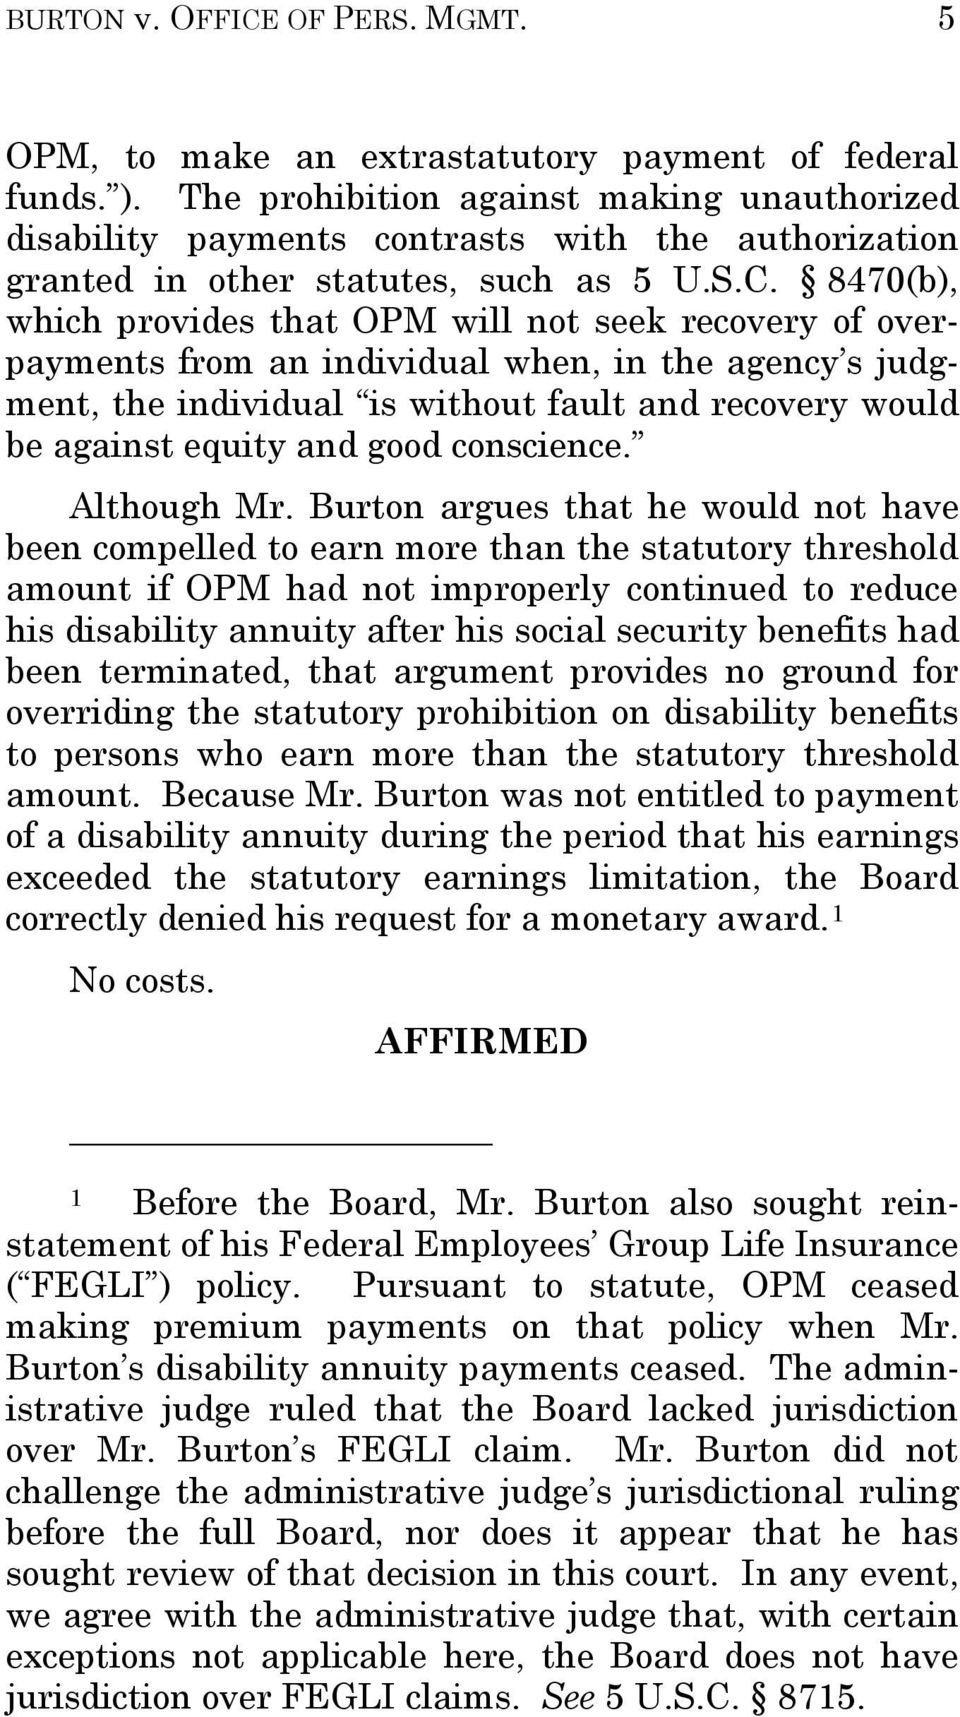 8470(b), which provides that OPM will not seek recovery of overpayments from an individual when, in the agency s judgment, the individual is without fault and recovery would be against equity and